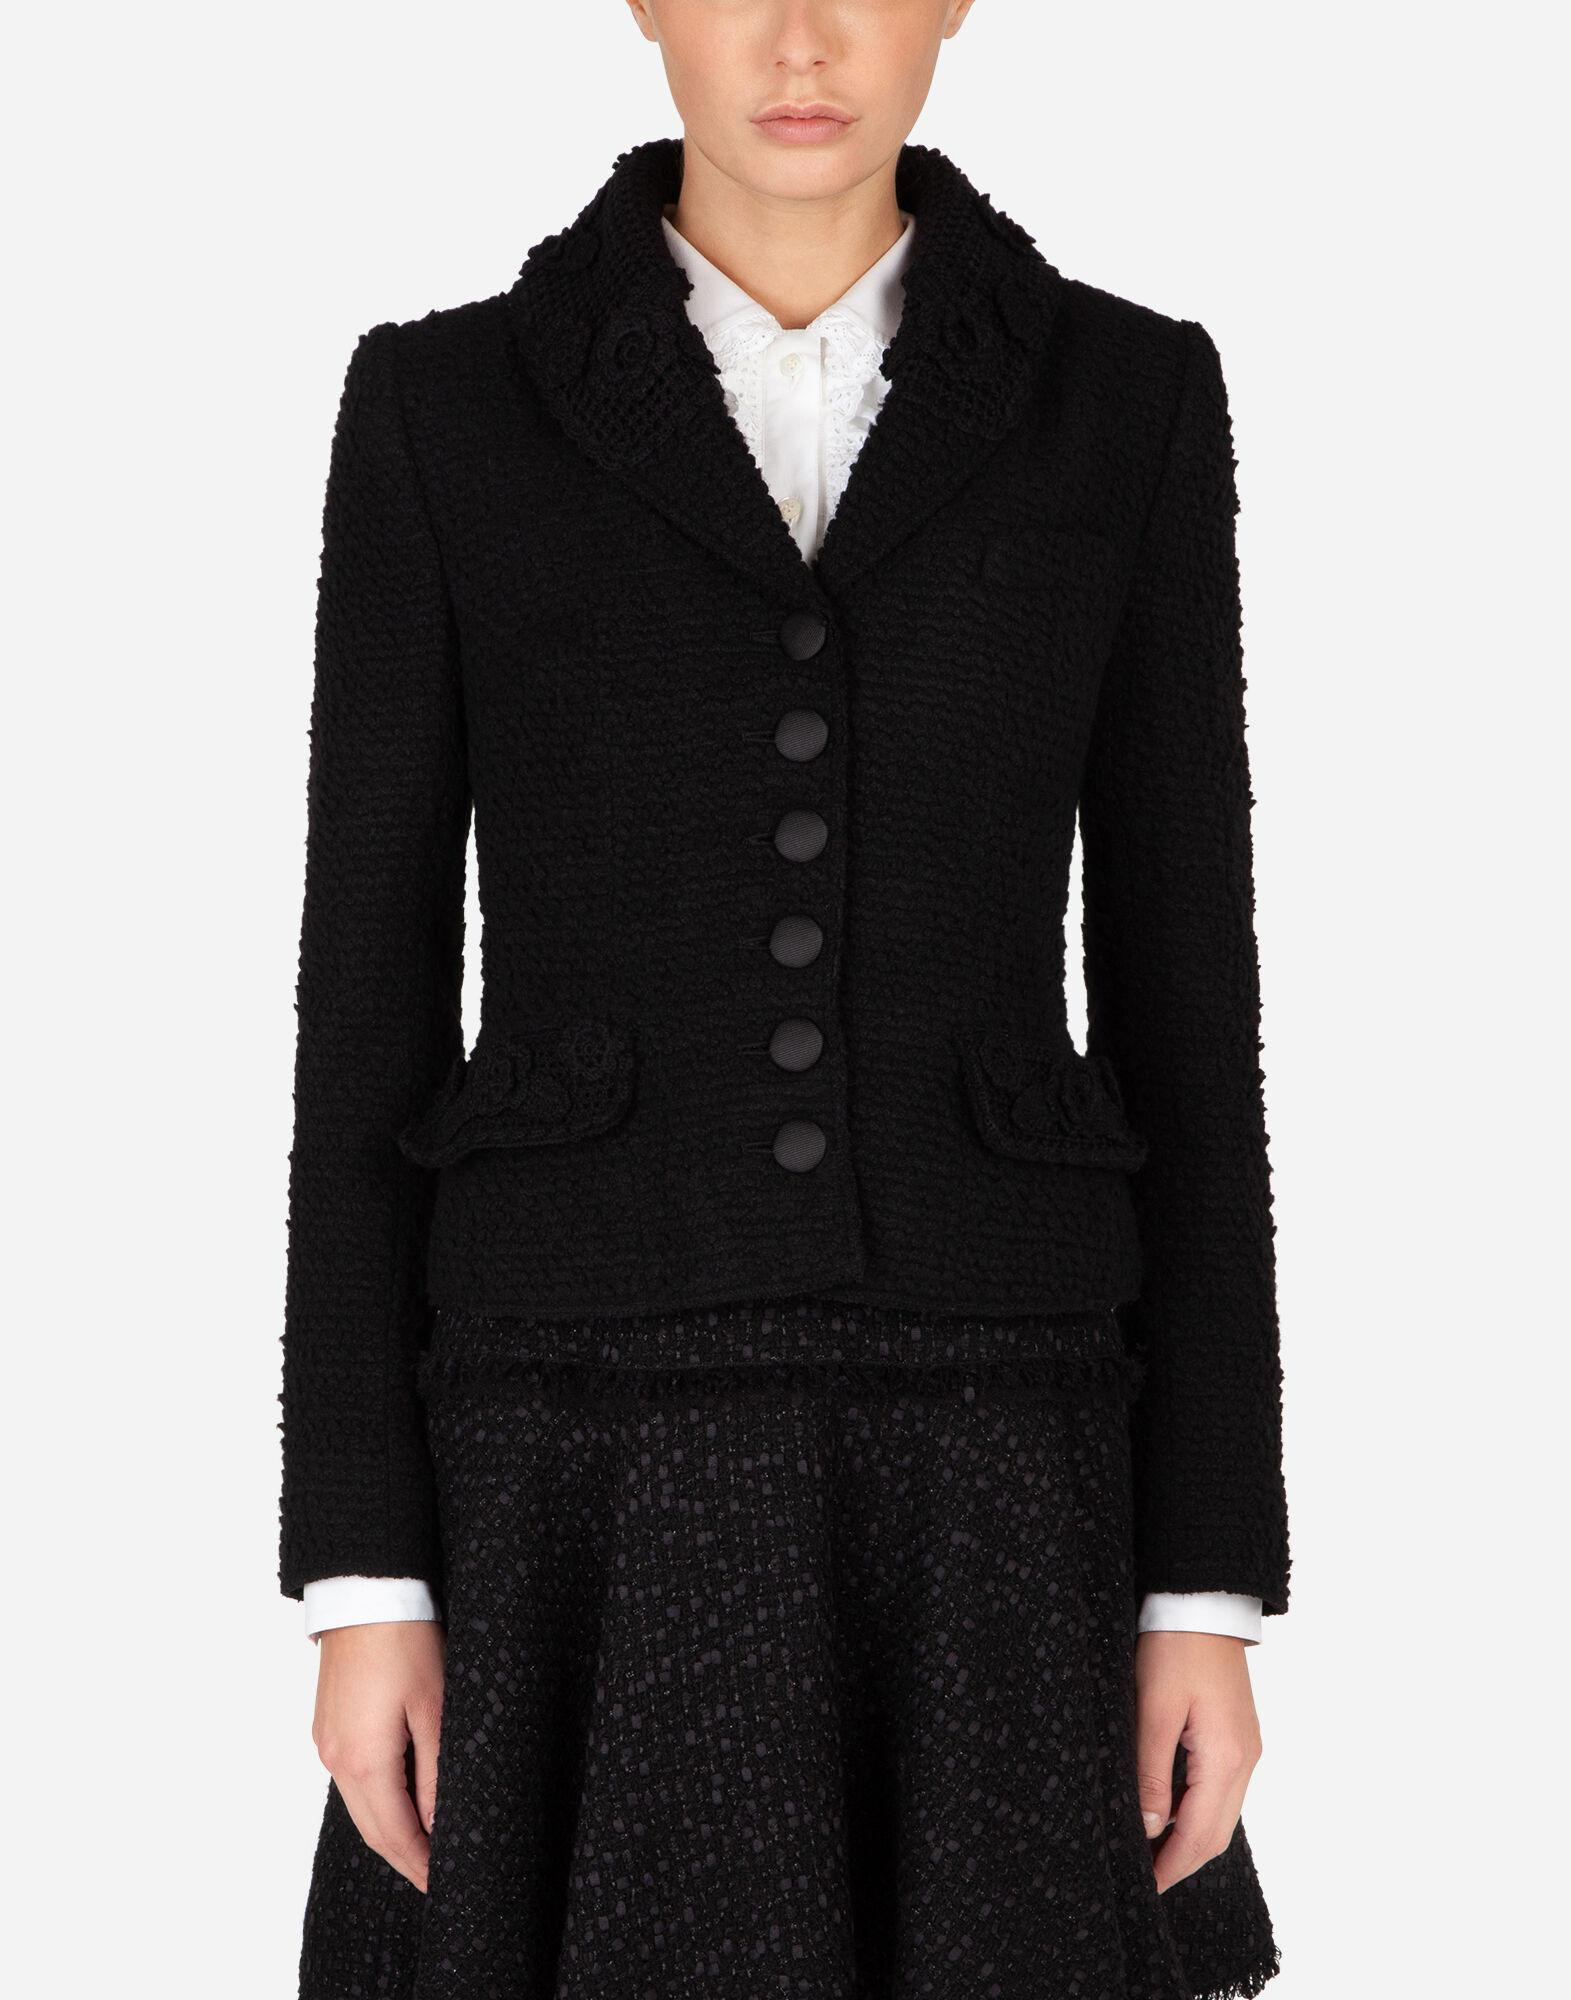 Short single-breasted bouclé Dolce jacket with floral embellishment